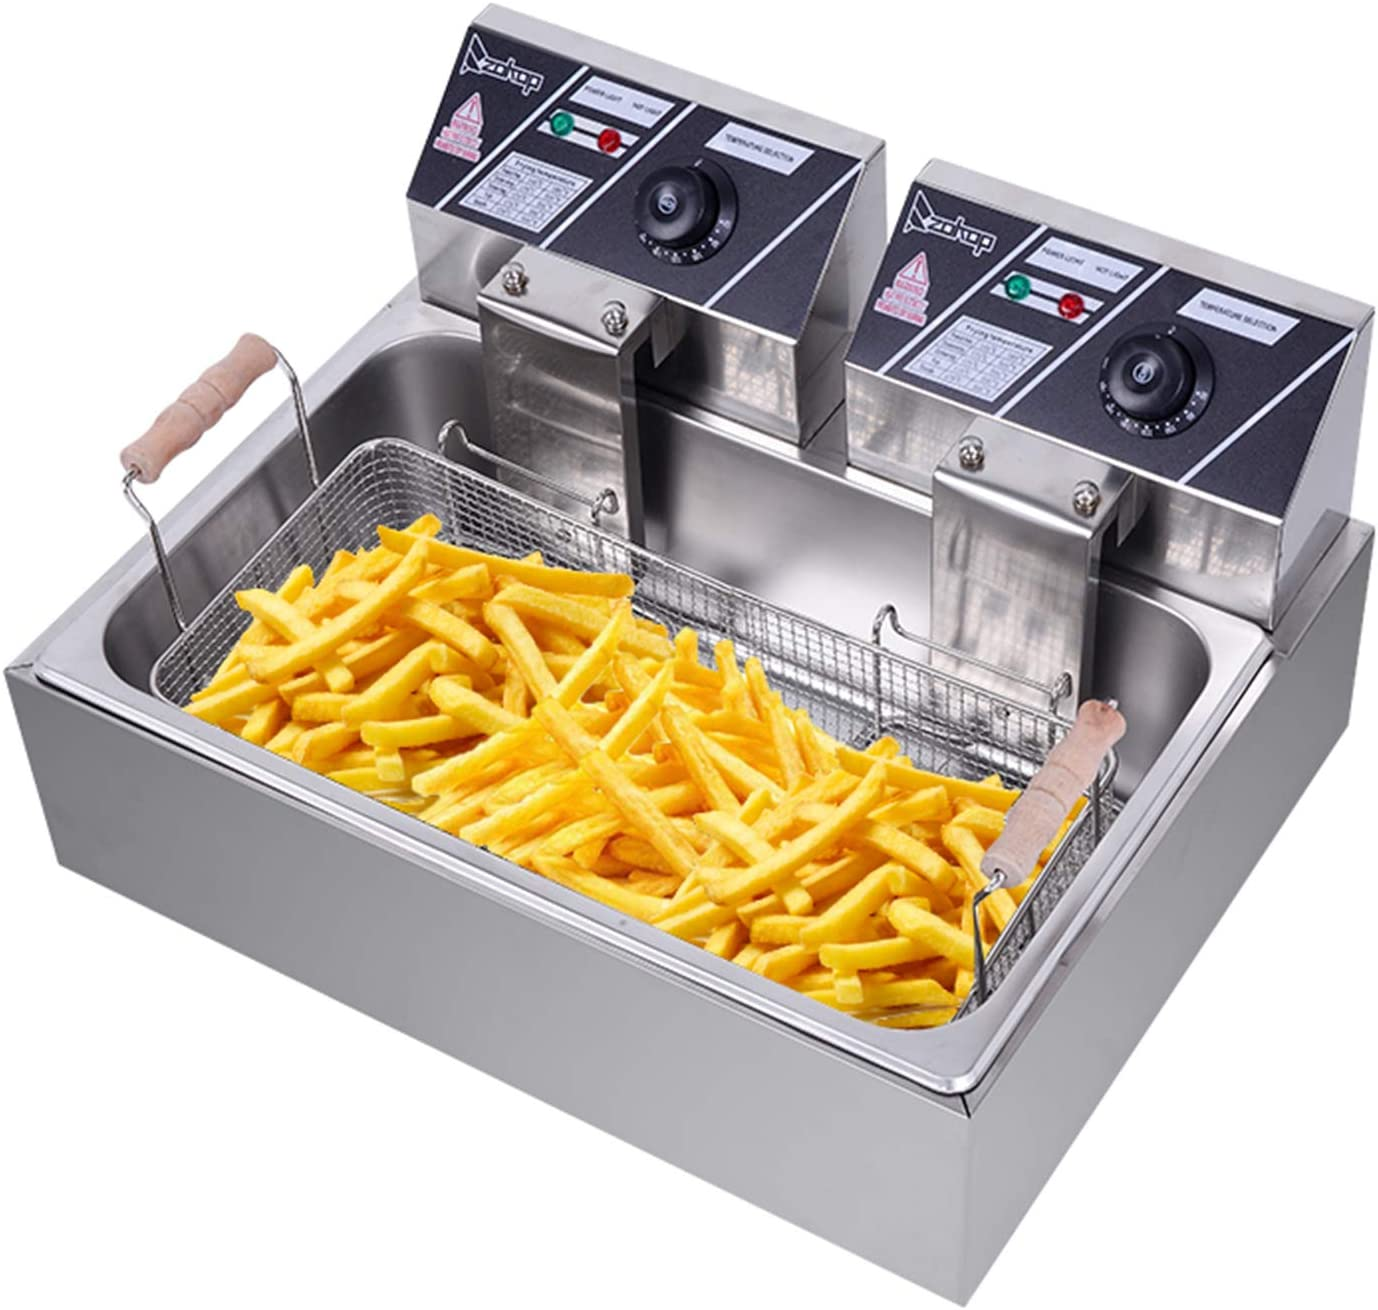 Deep Fryers,Large Capacity Electric Deep Fryer for Commercial and Home Use 5000W-Watt Large 12 L/12.7Qt Professional Grade Stainless Steel (Silver)